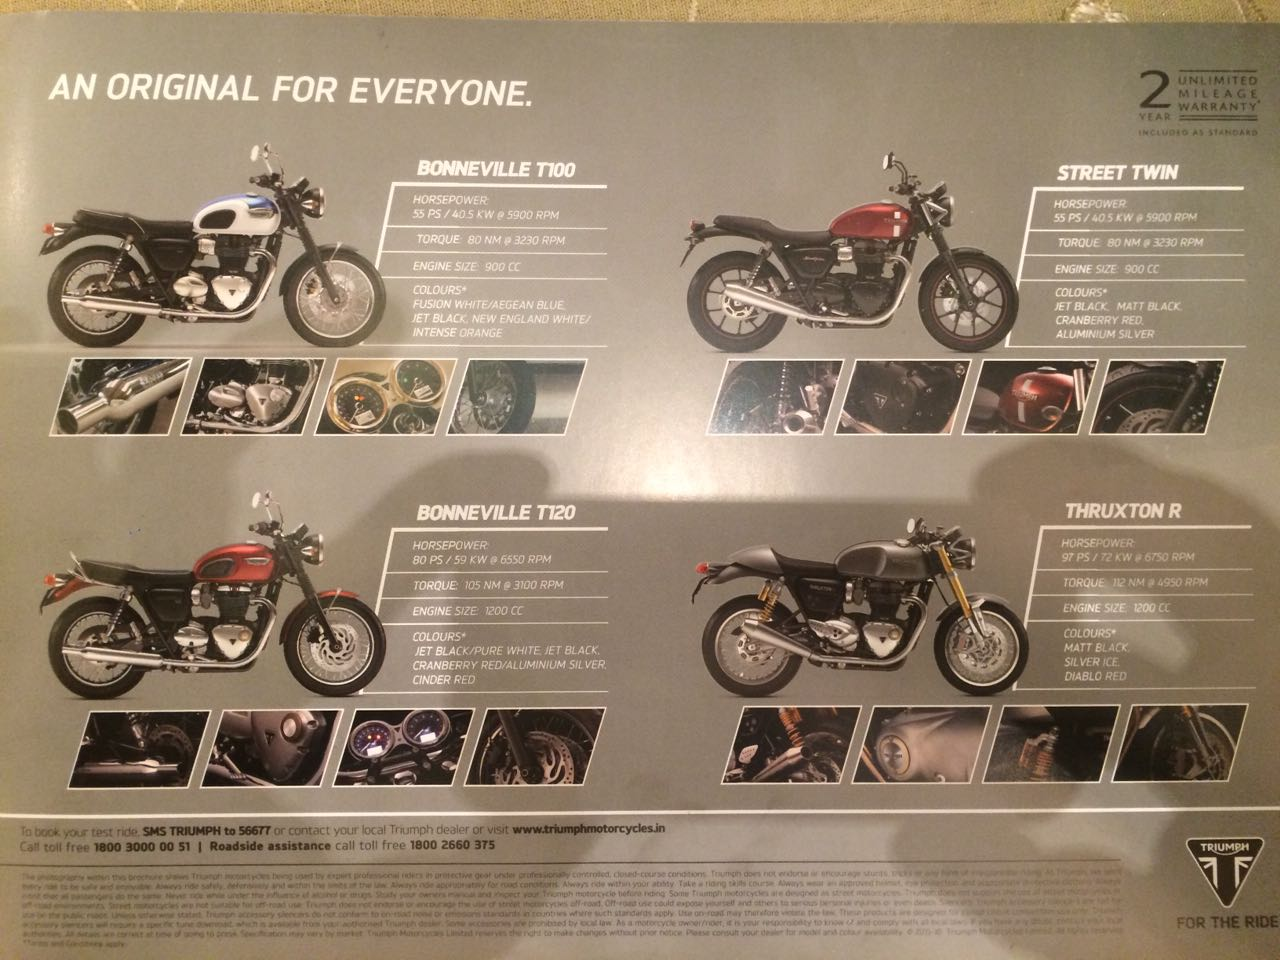 new-2017-triumph-bonneville-t100-and-t120-india-launch-36